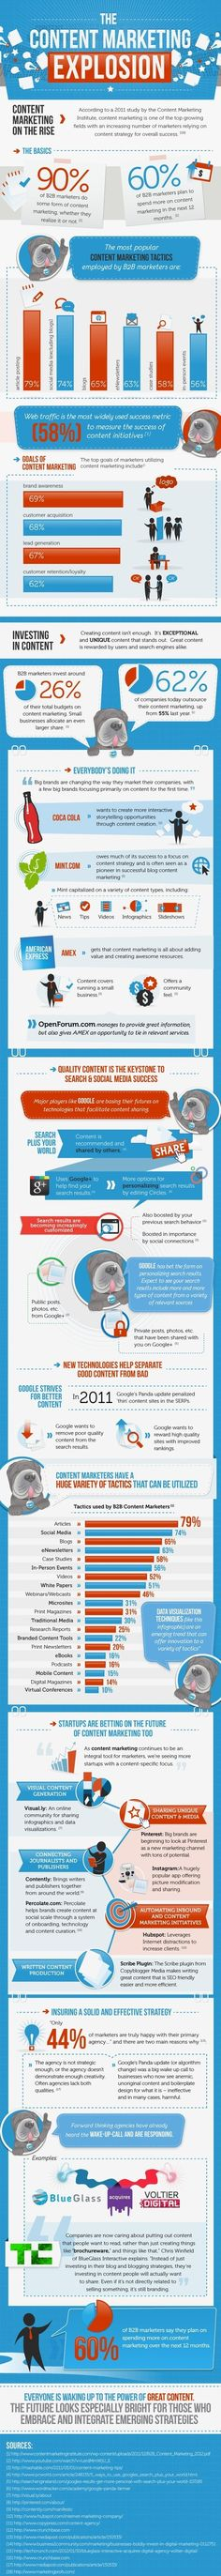 The Content Marketing Explosion & Importance of Reviews [Infographic & Marty Note]